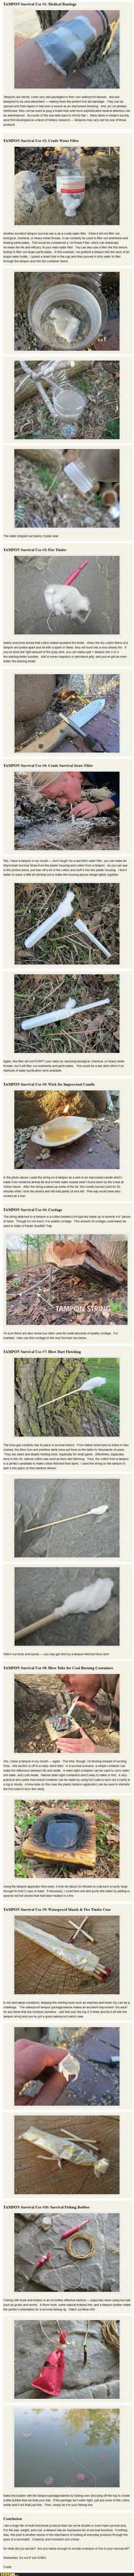 Survival Guide with Tampons